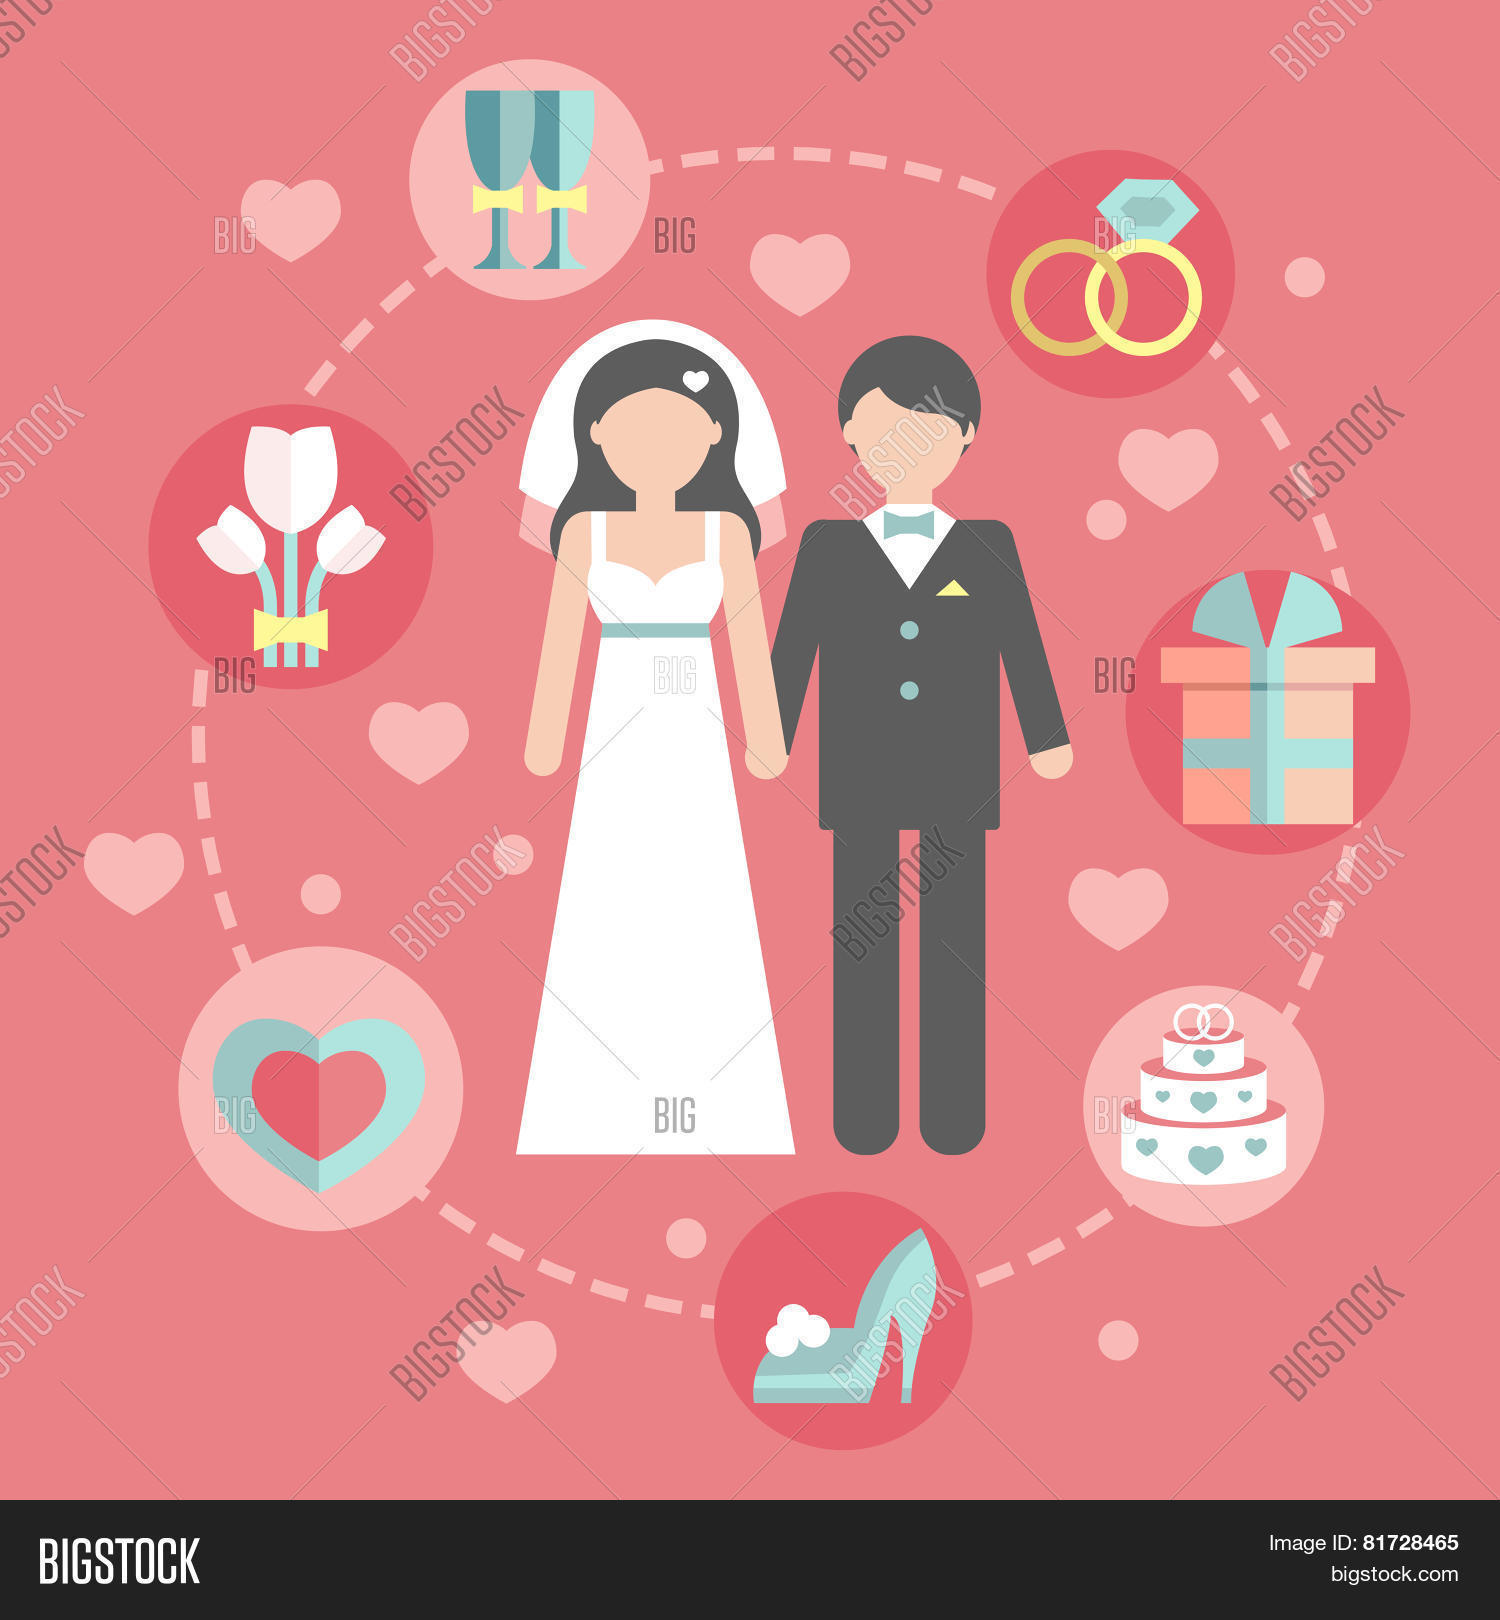 Wedding Infographic Set With Cartoon Bride And GroomWedding Day Coast Statistics Design Template